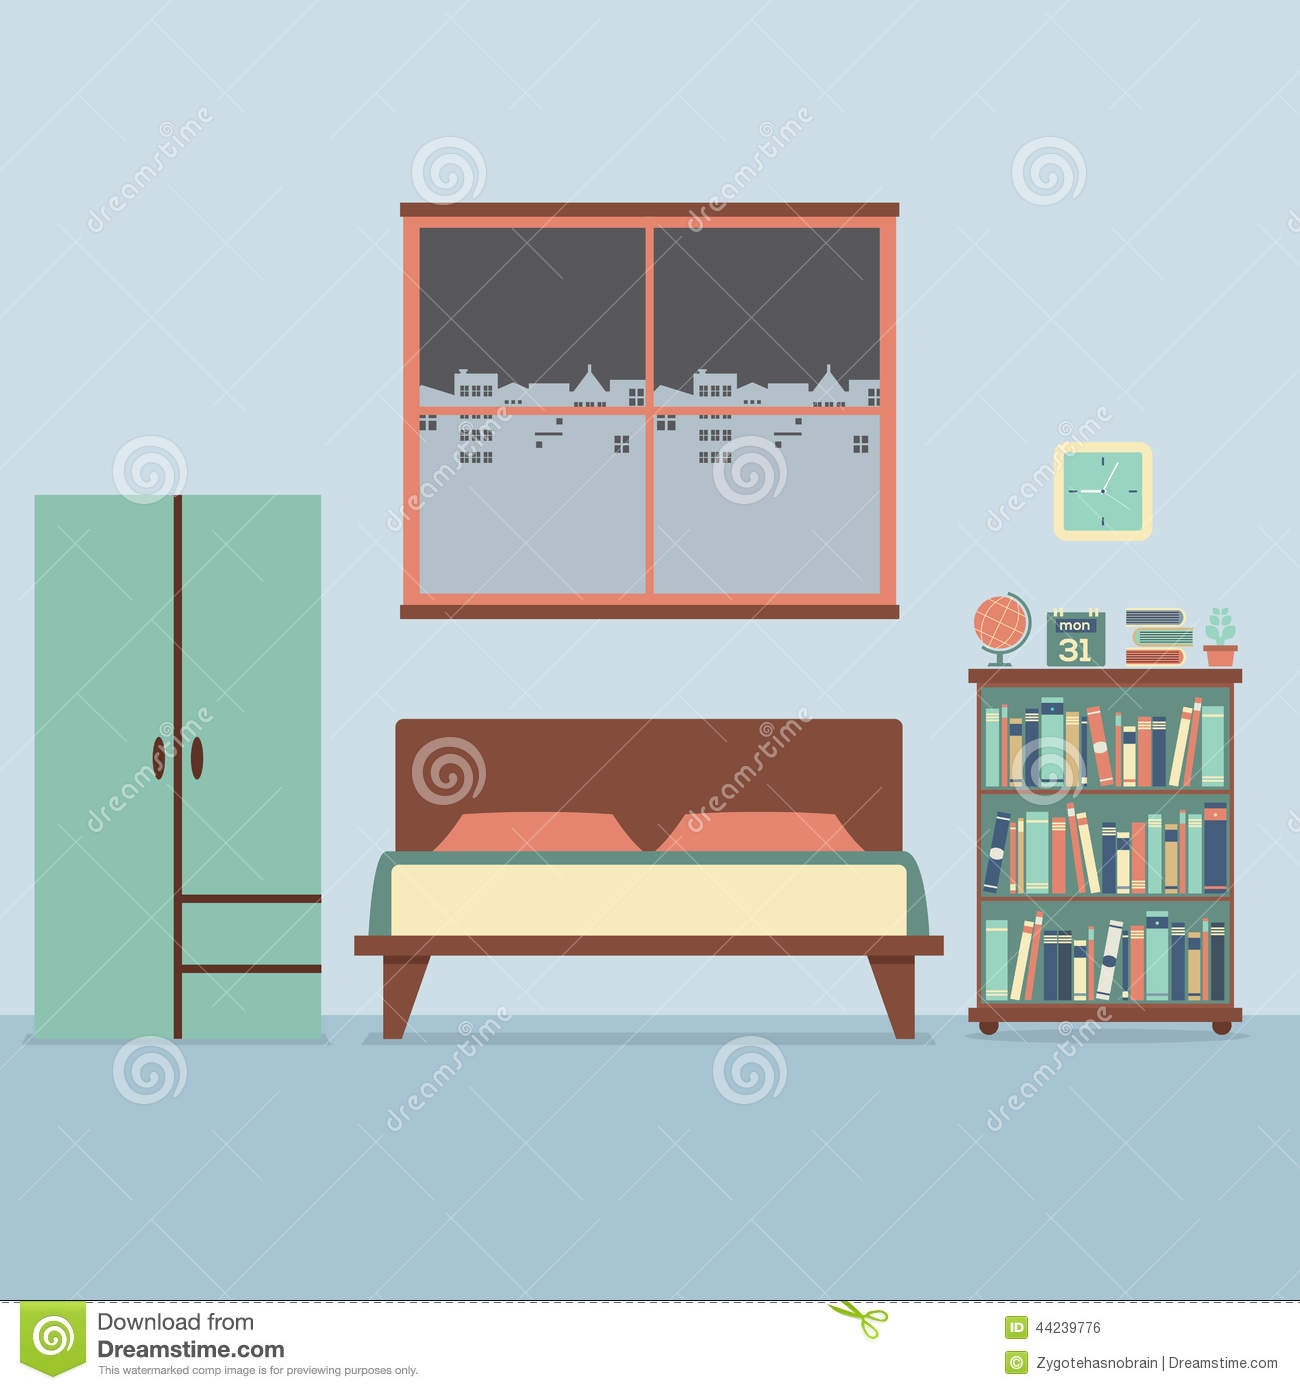 Flat design bedroom interior stock vector image 44239776 - Architecture plans of bedroom flat ...